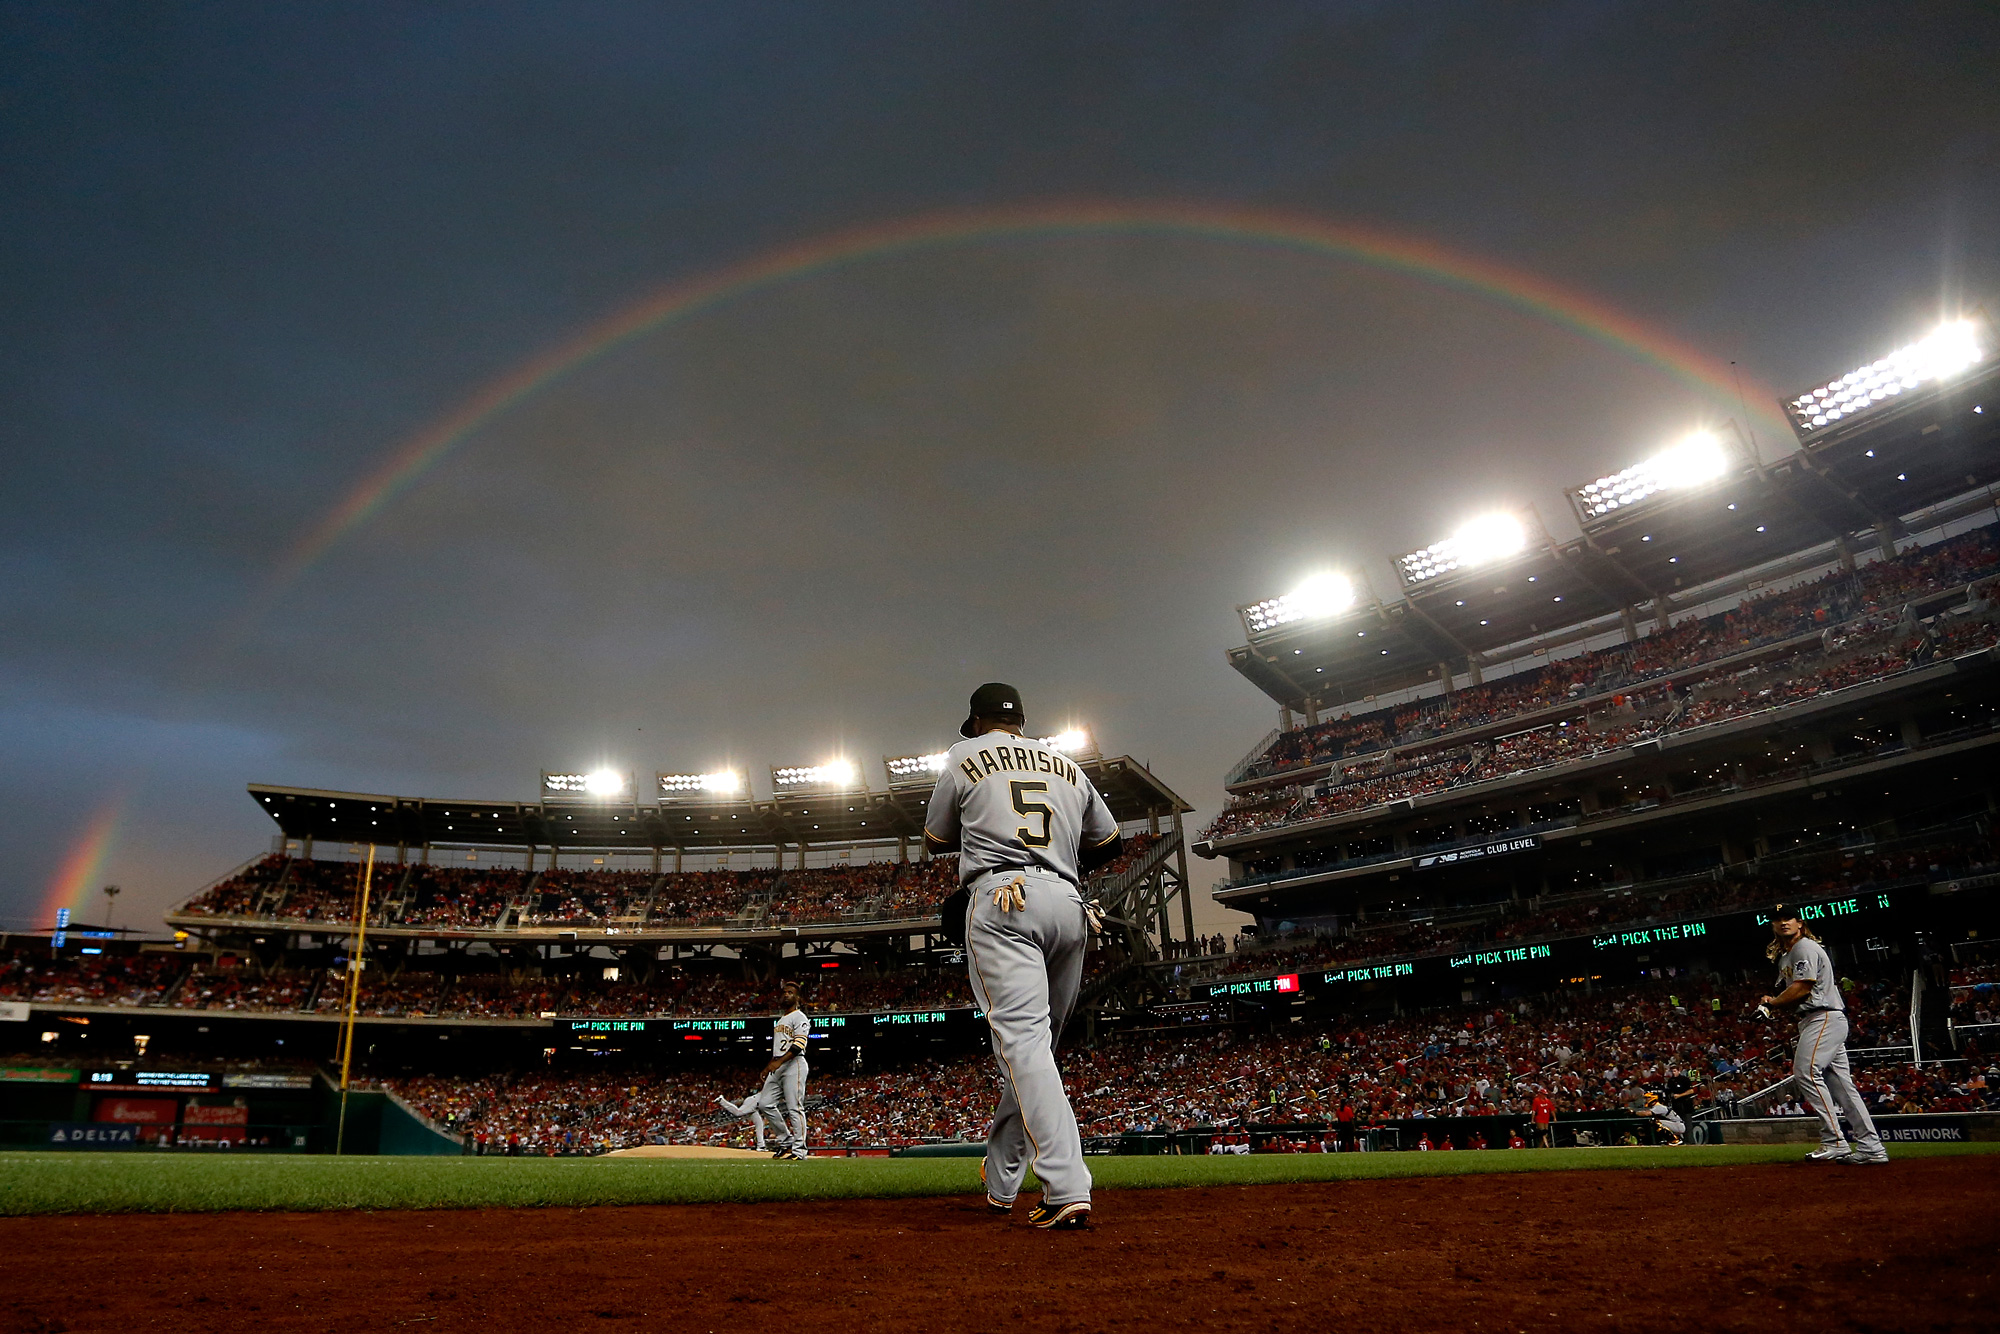 Josh Harrison #5 of the Pittsburgh Pirates walks onto the field under a rainbow in the first inning against the Washington Nationals at Nationals Park on July 16, 2016 in Washington, DC.